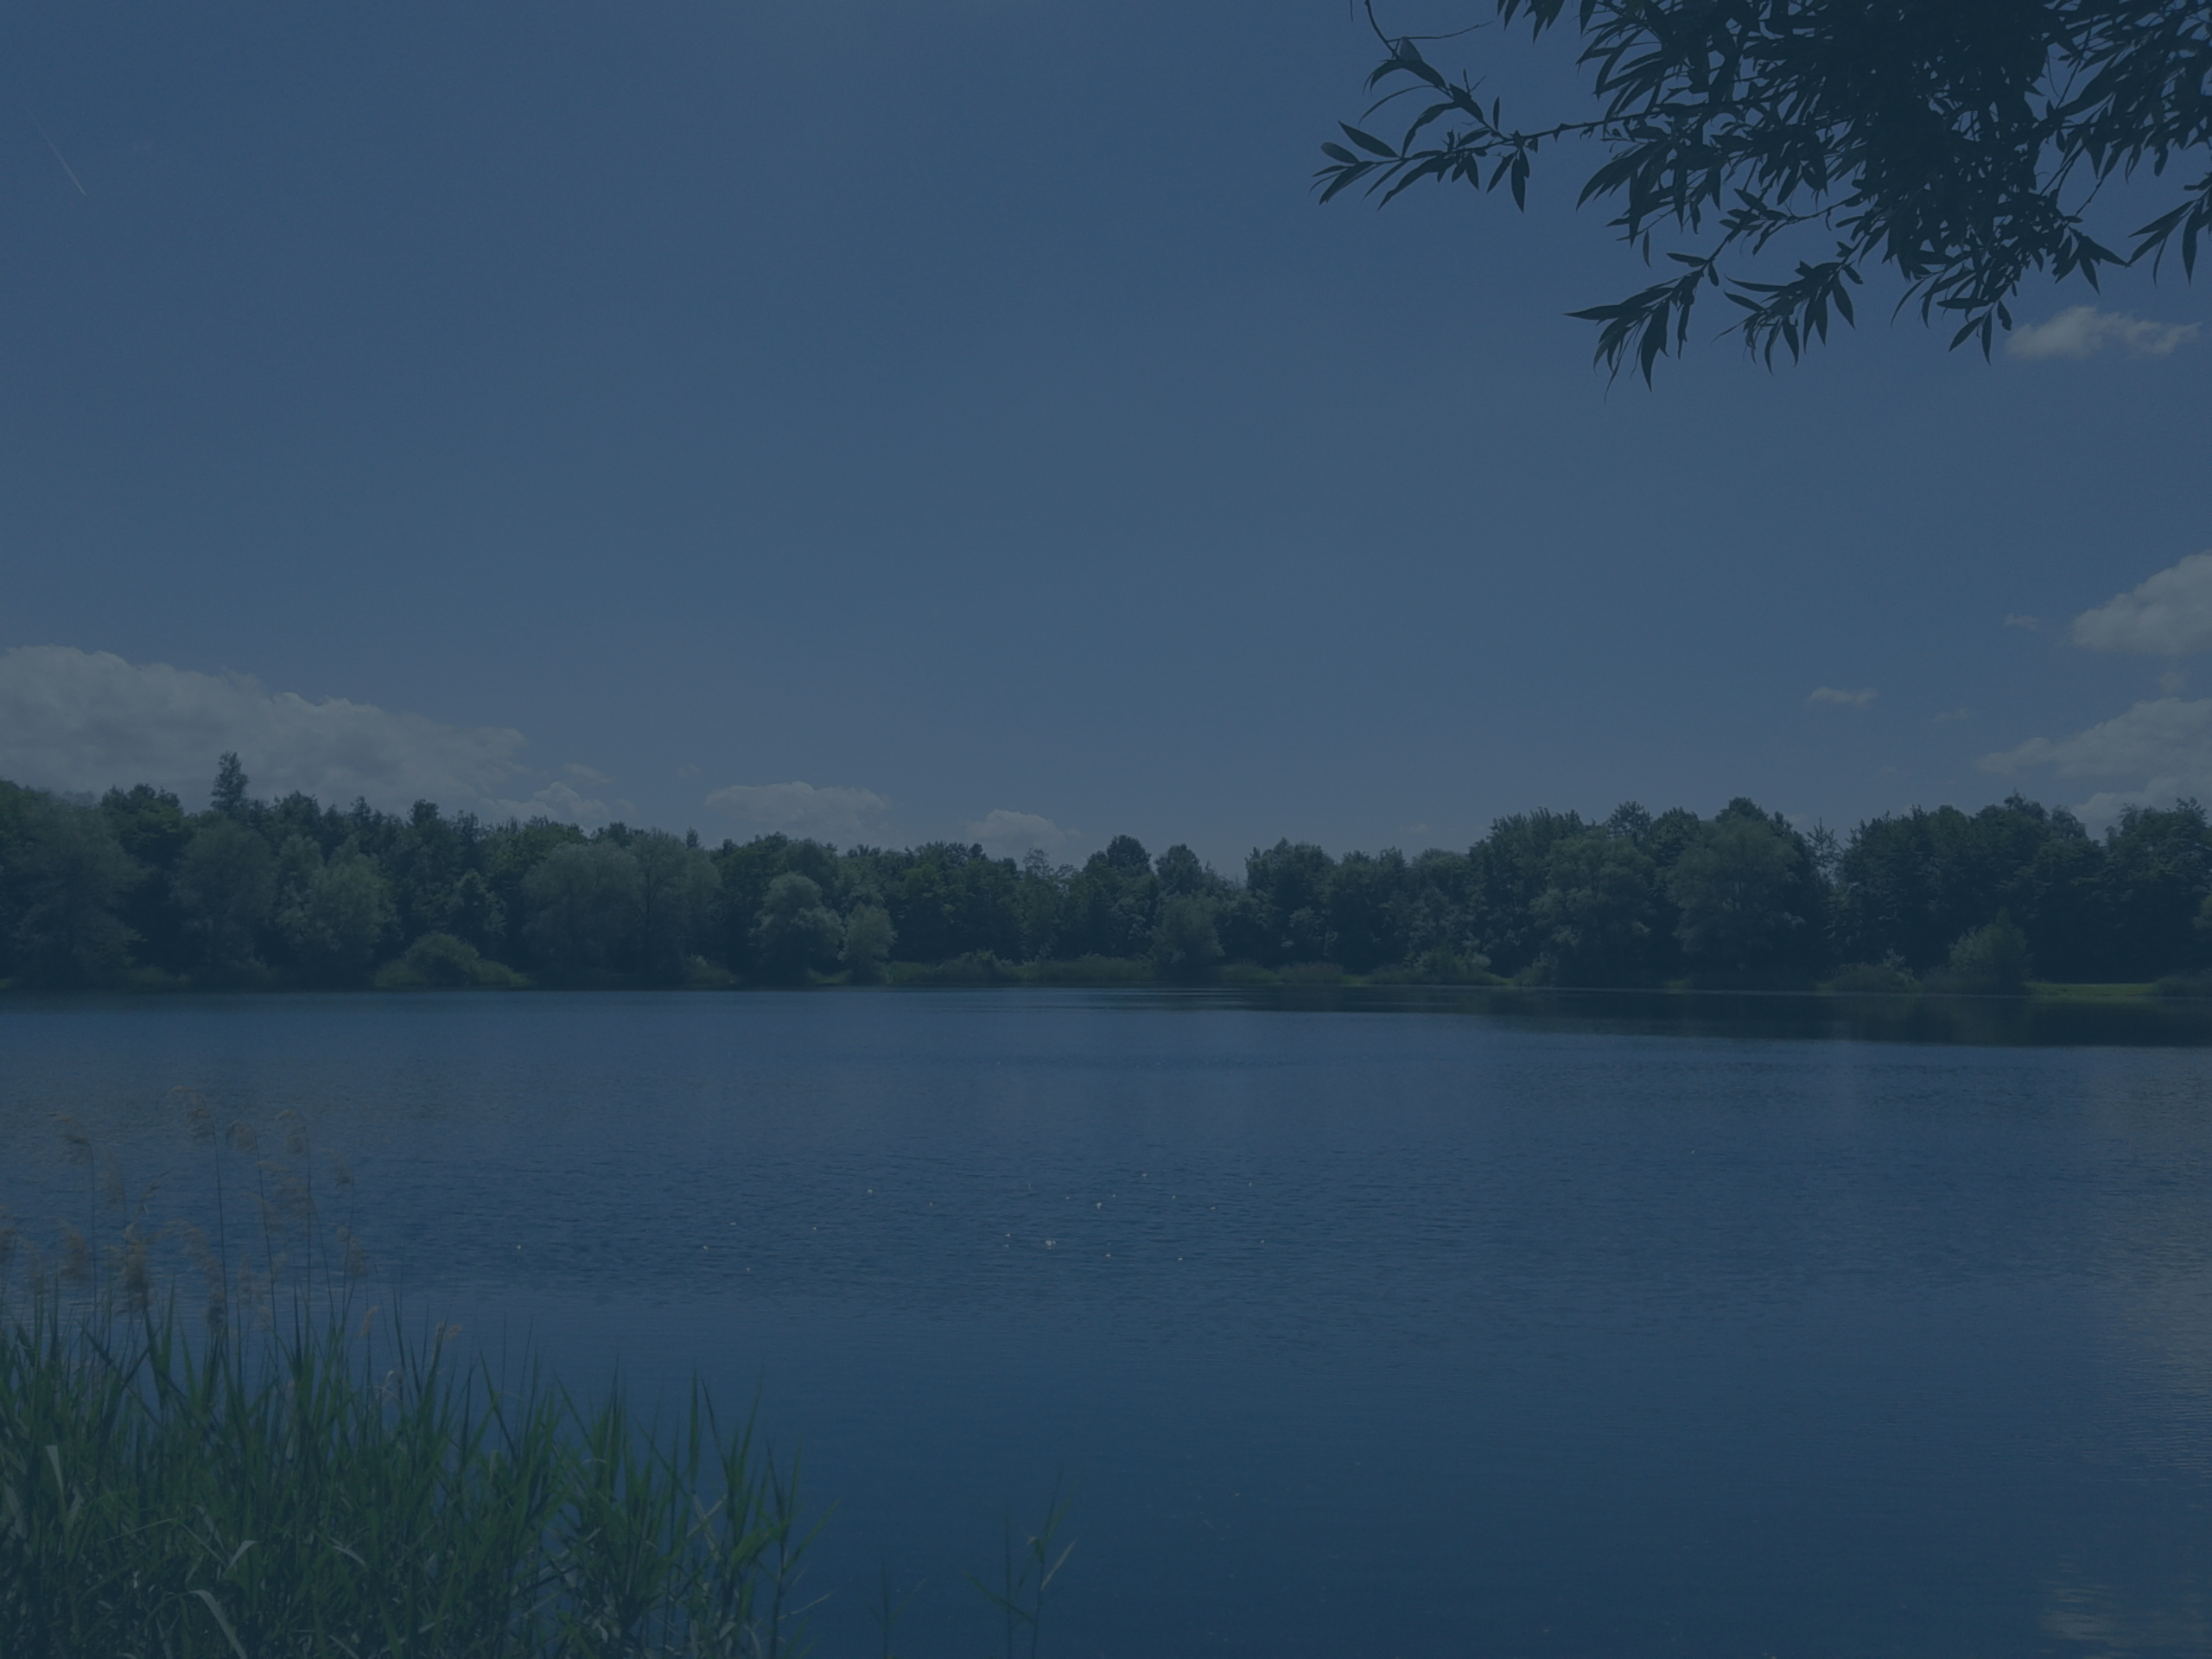 An image of a lake near Karlsruhe. It is a very peacefull place. No trace of humans. In the foreground on the left there is some tall grass. It is a warm summer day with only a few clouds.